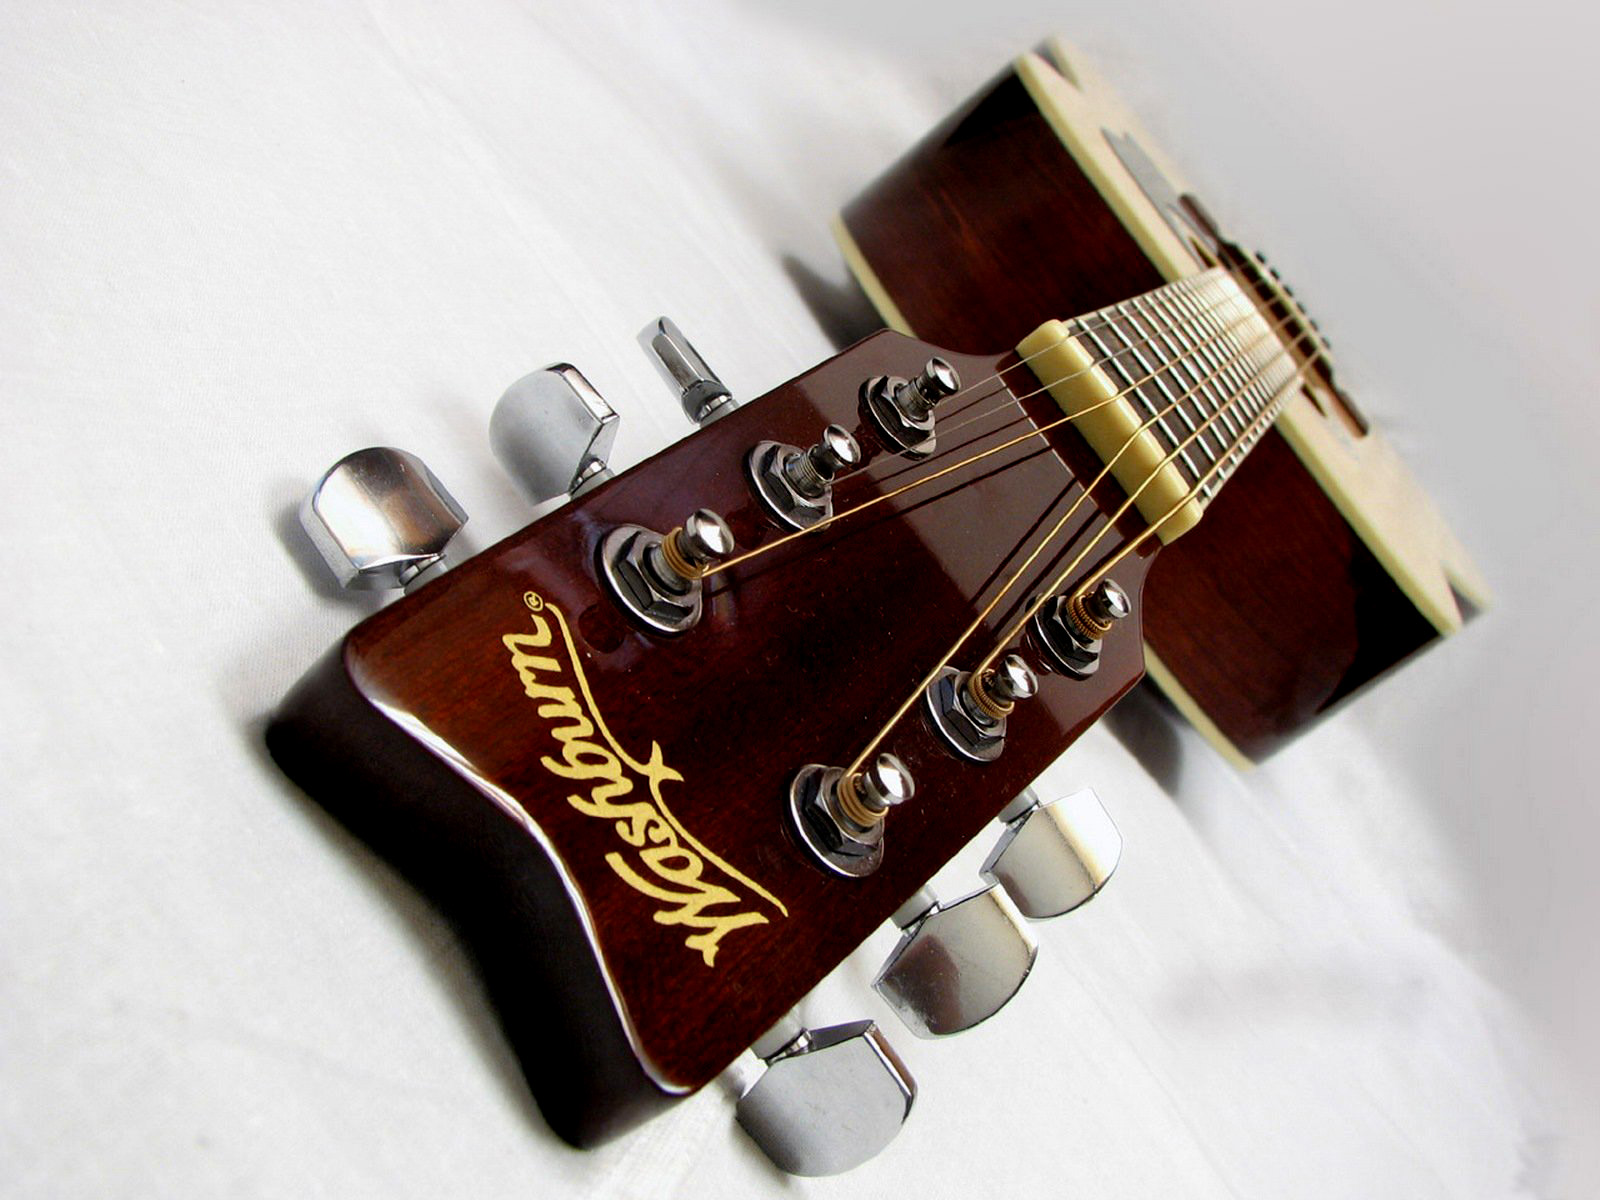 Washburn Acoustic Guitar Headstock Tuners Strings Fretboard HD Music Desktop Wallpaper 1600x1200